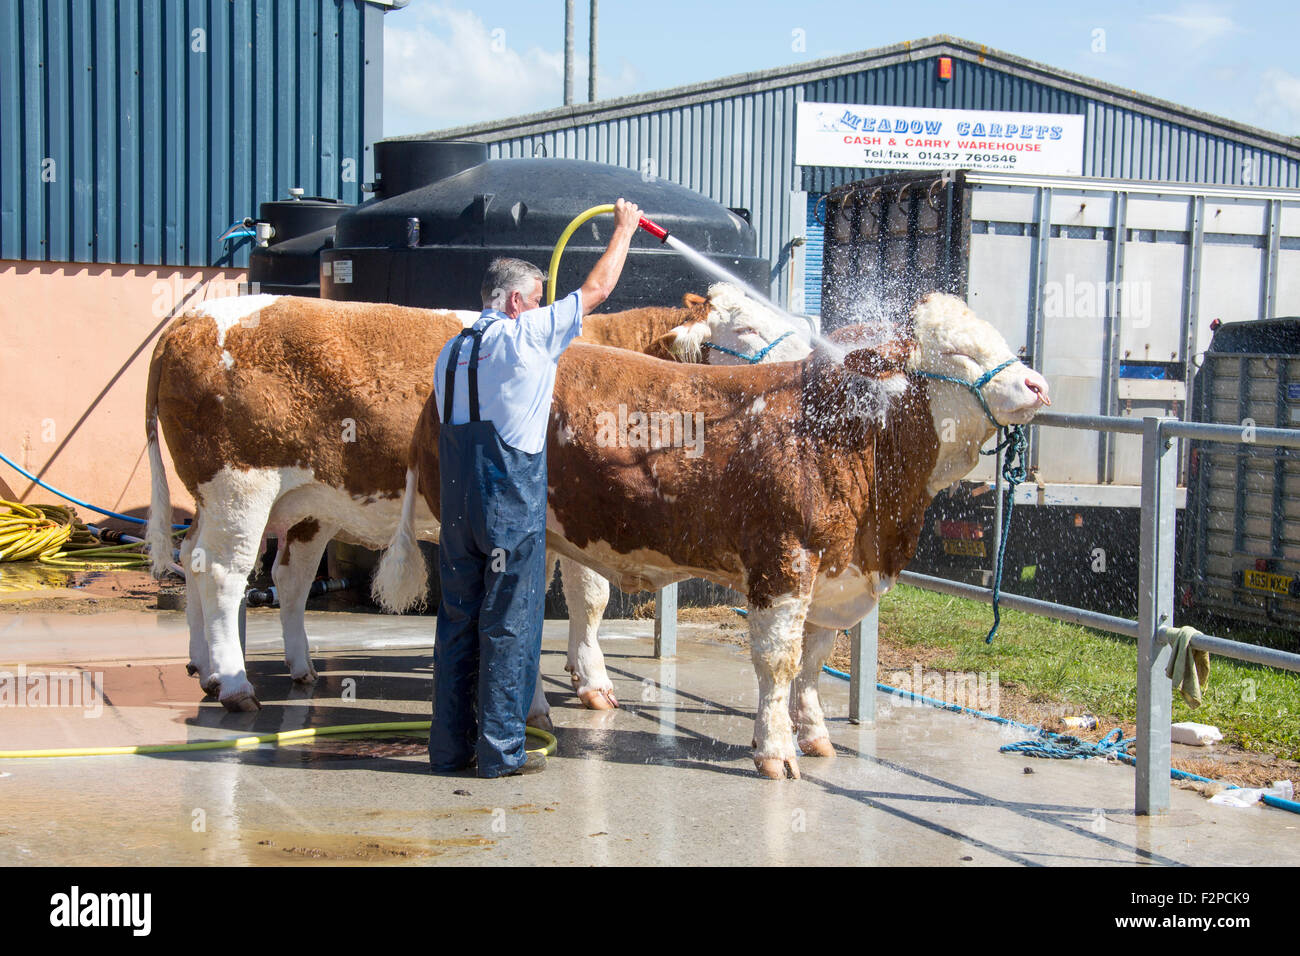 Bull cattle being washed with water hose. - Stock Image